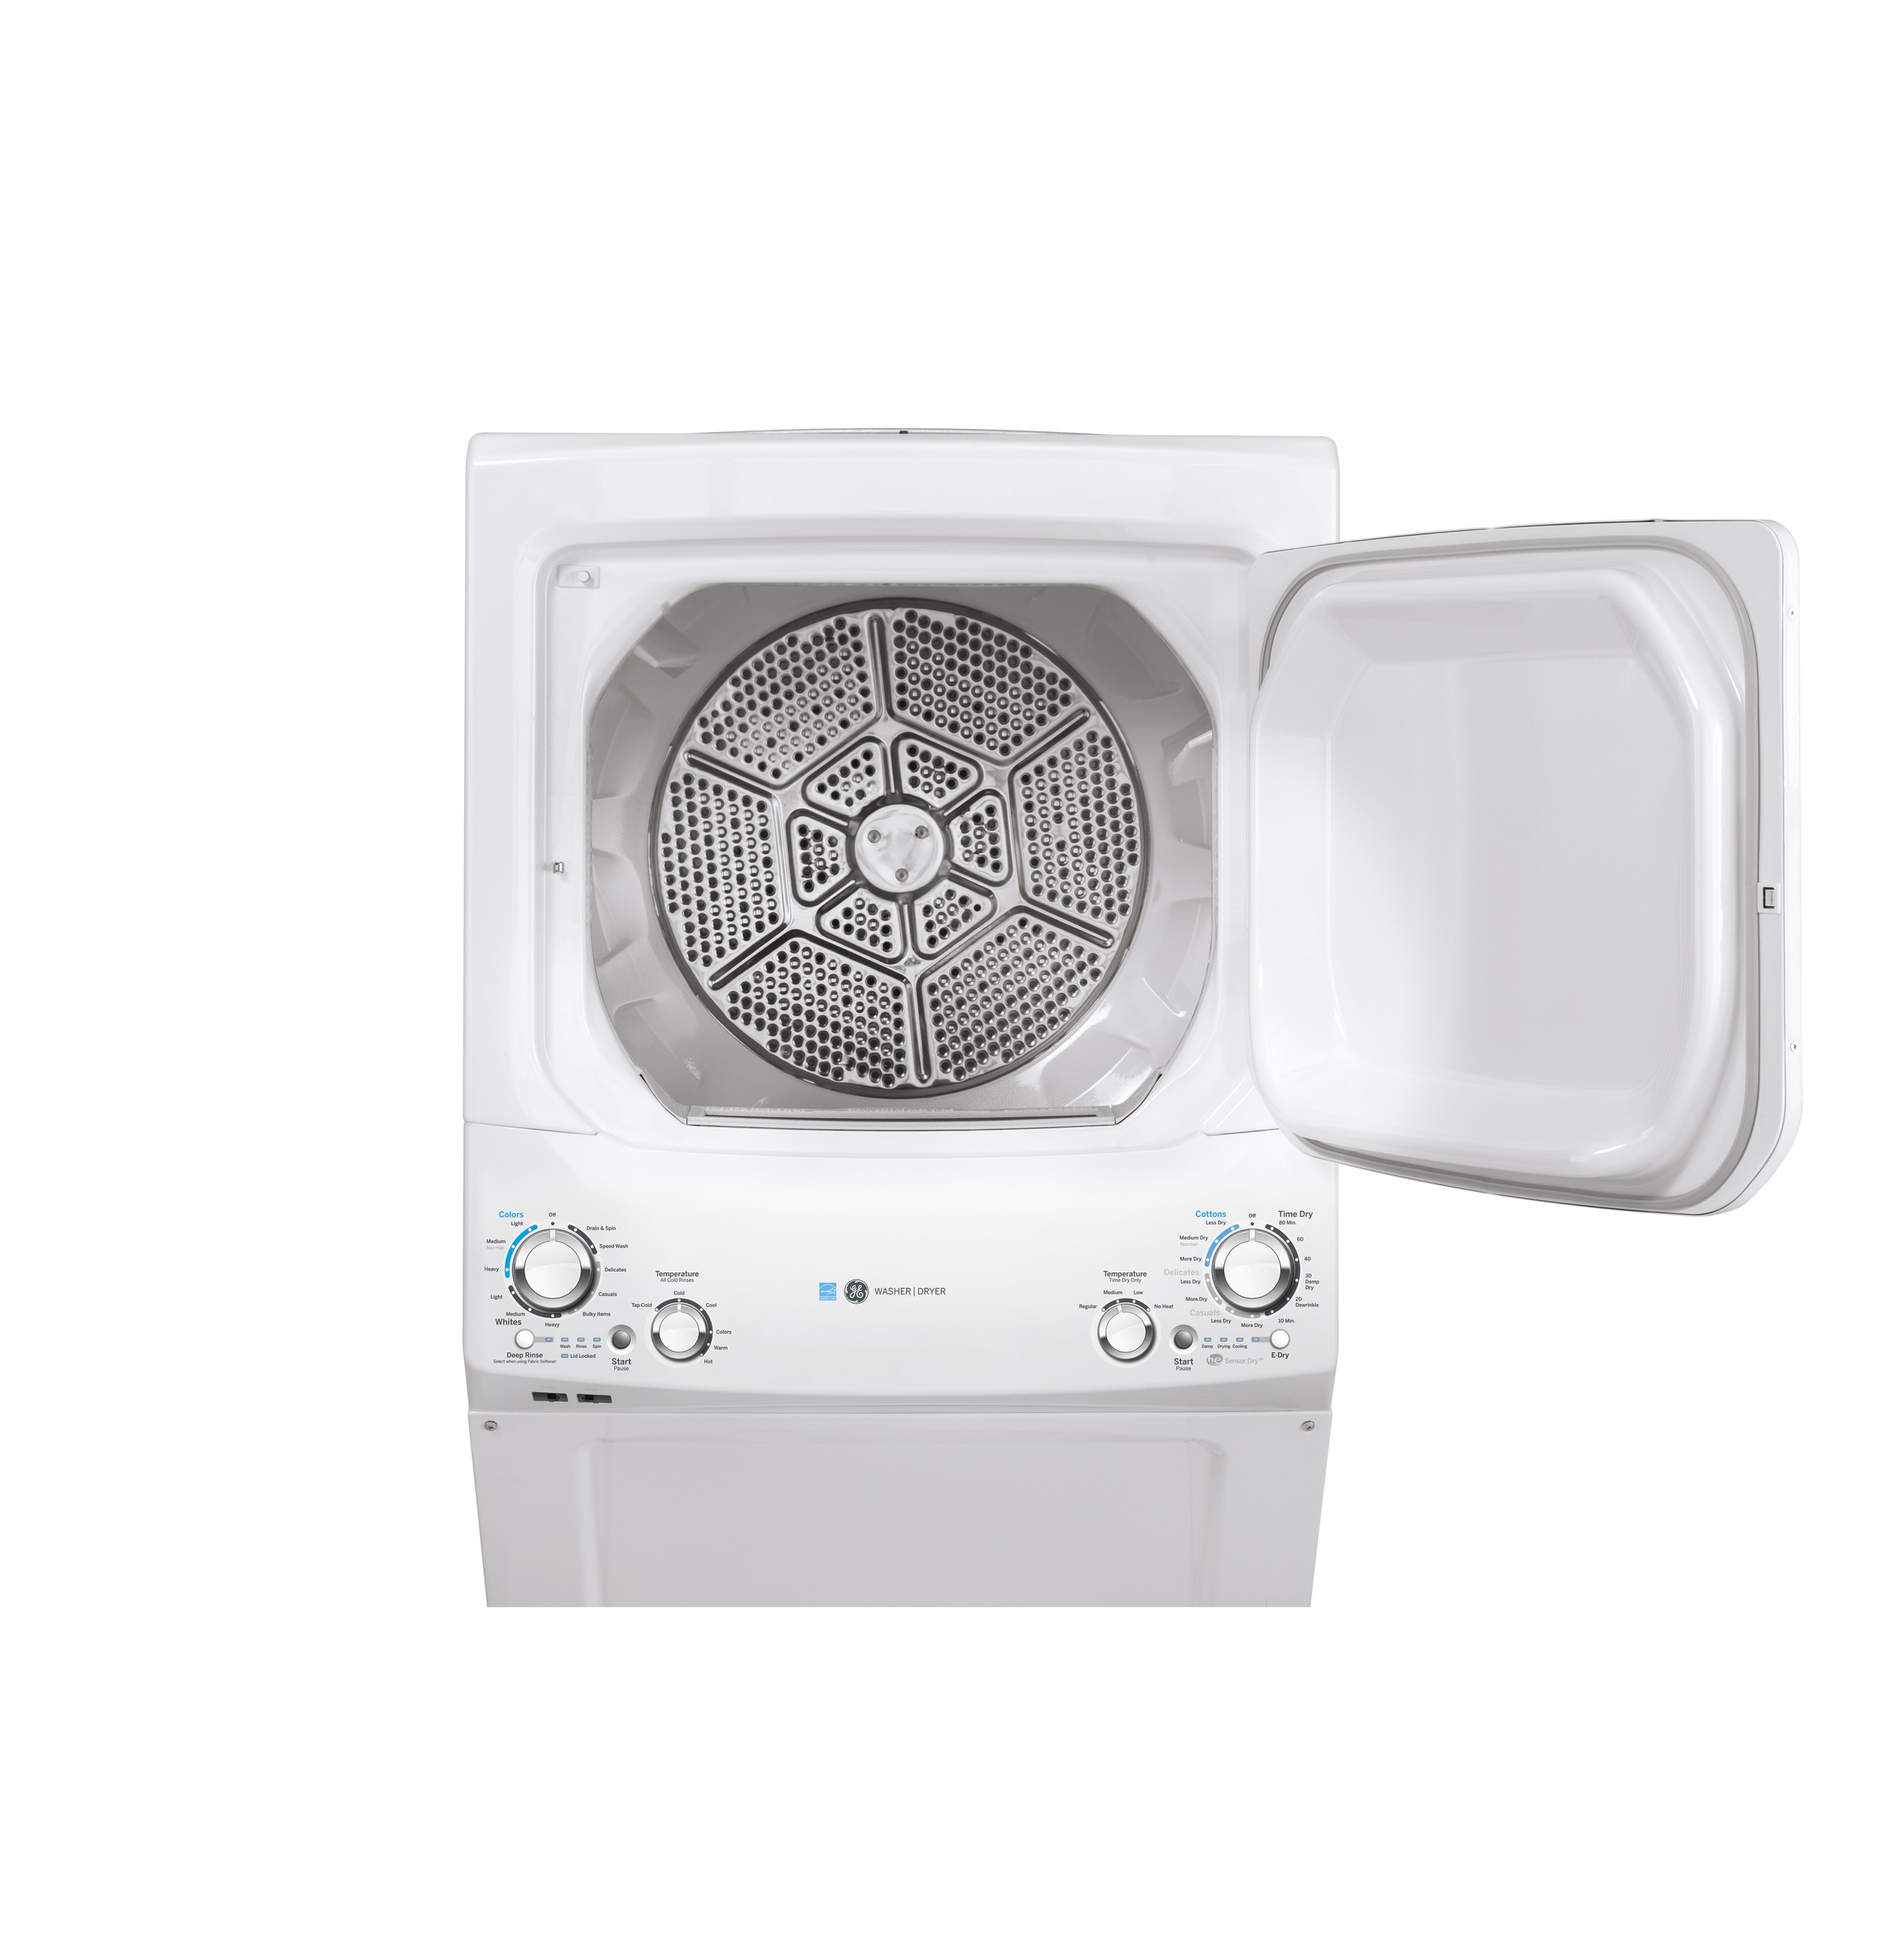 Model: GUD27EESNWW | GE GE Unitized Spacemaker® 3.9 cu. ft. Capacity Washer with Stainless Steel Basket and 5.9 cu. ft. Capacity Electric Dryer